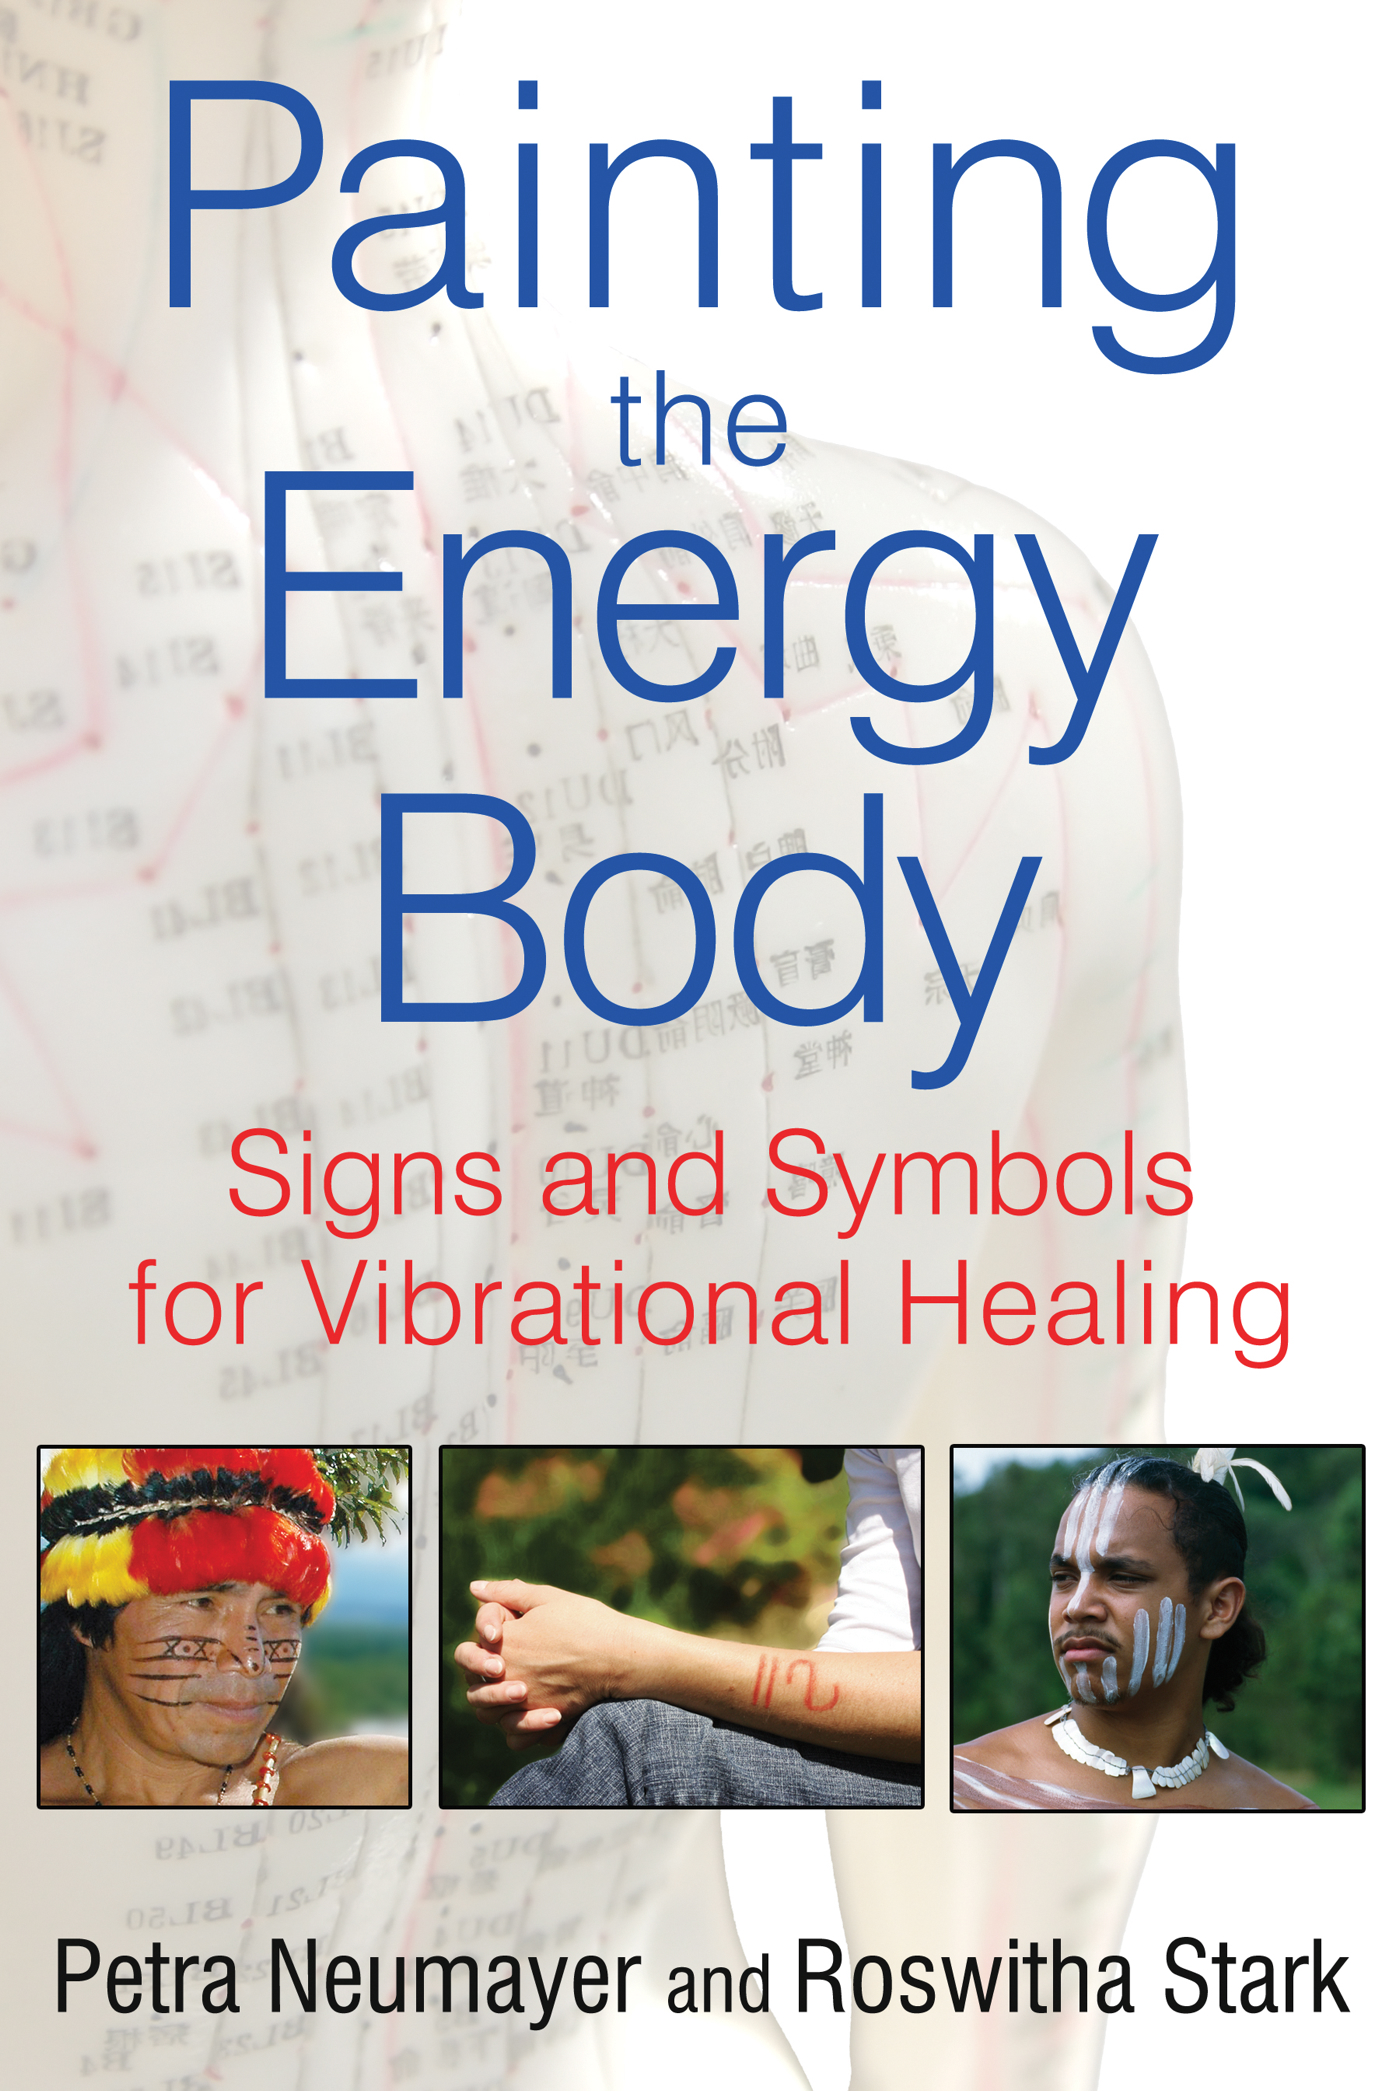 Painting the energy body 9781594774805 hr